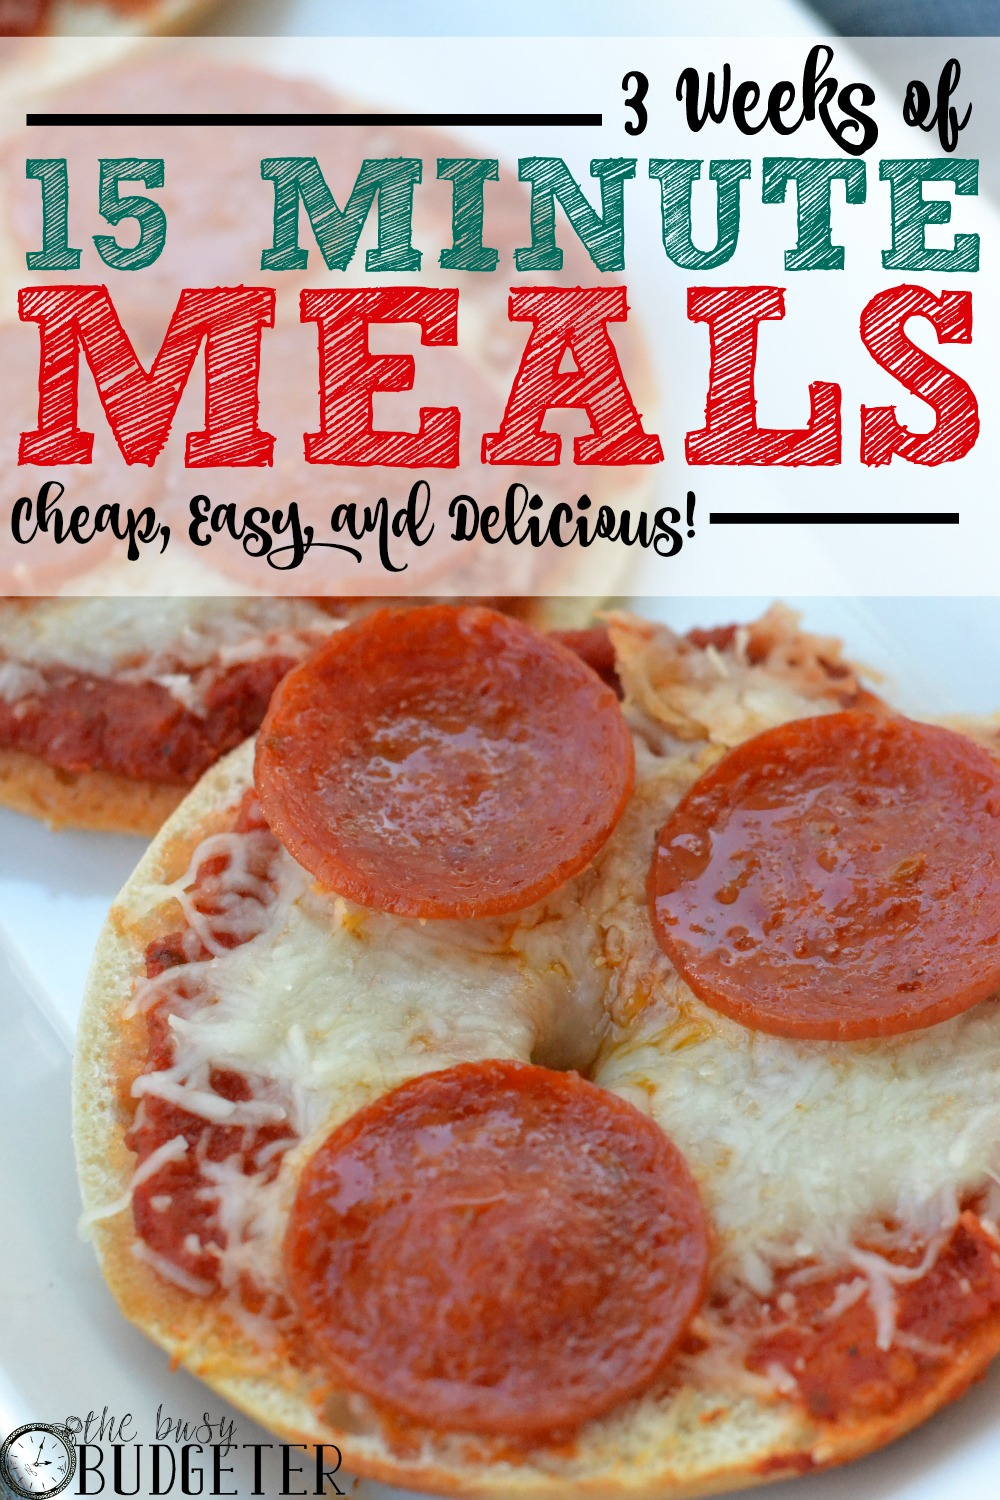 Cheap dinners: 3 Weeks of 15 Minute Meals